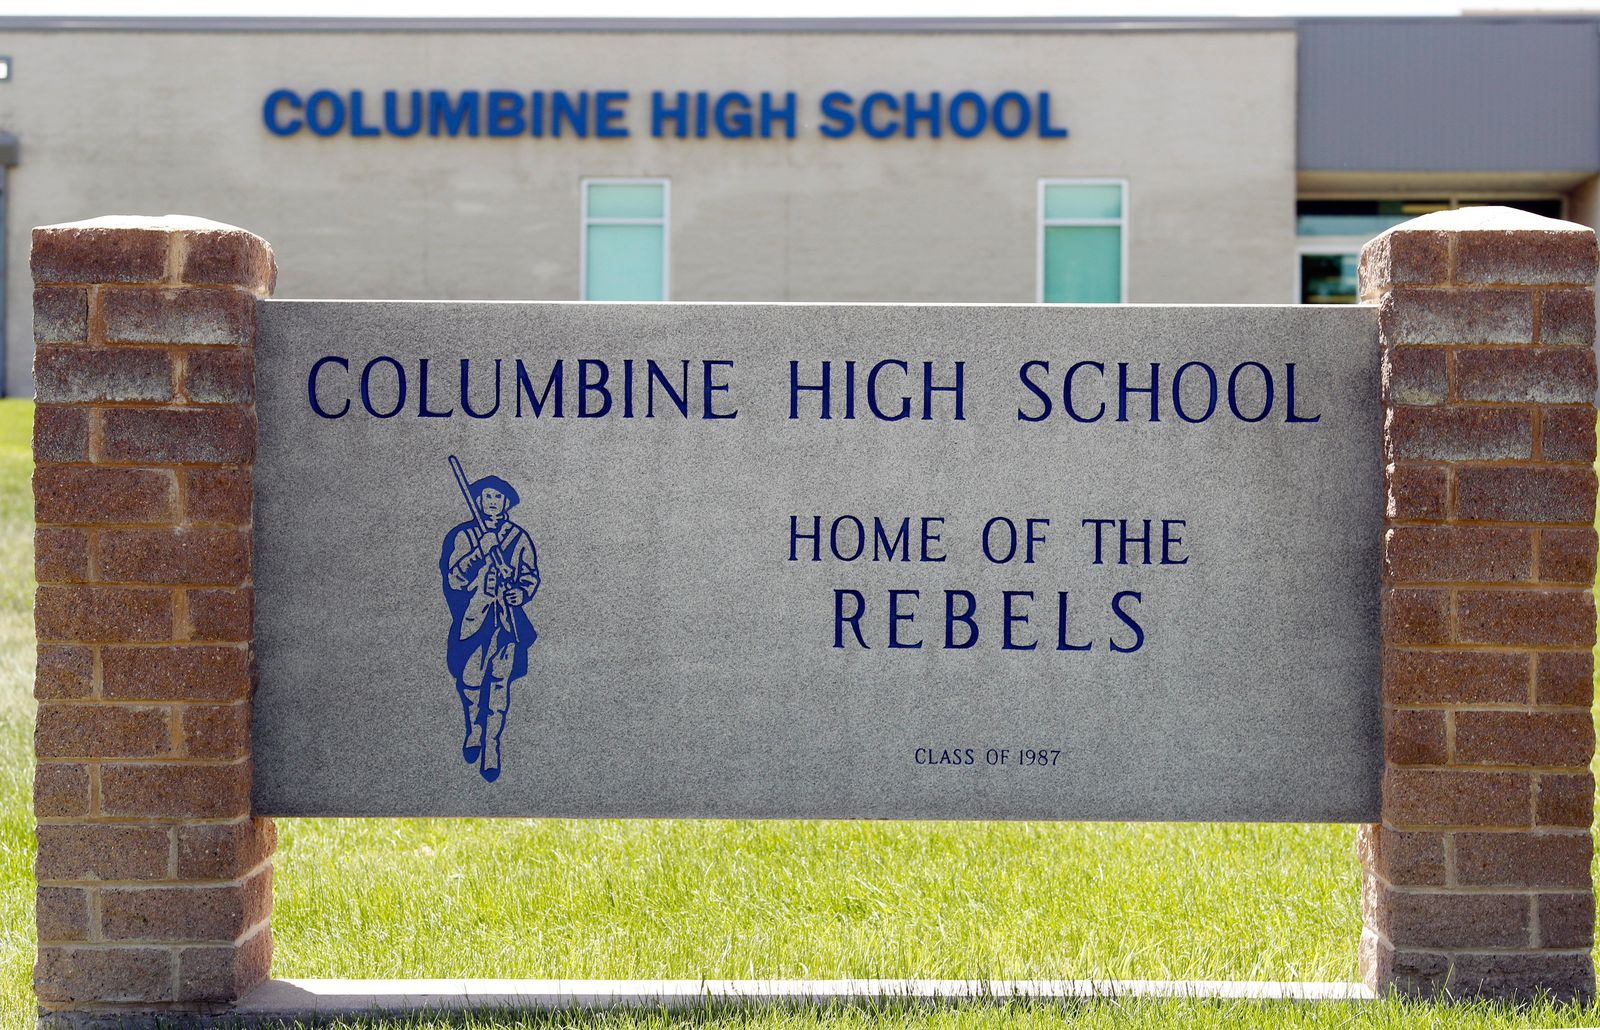 Signs outside Columbine High School are photographed, Thursday, June 13, 2019, in Littleton, Colo. The school district is considering the demolition of Columbine, the scene of a mass assault more than 20 years ago, and rebuilding the current school. (AP Photo/David Zalubowski)